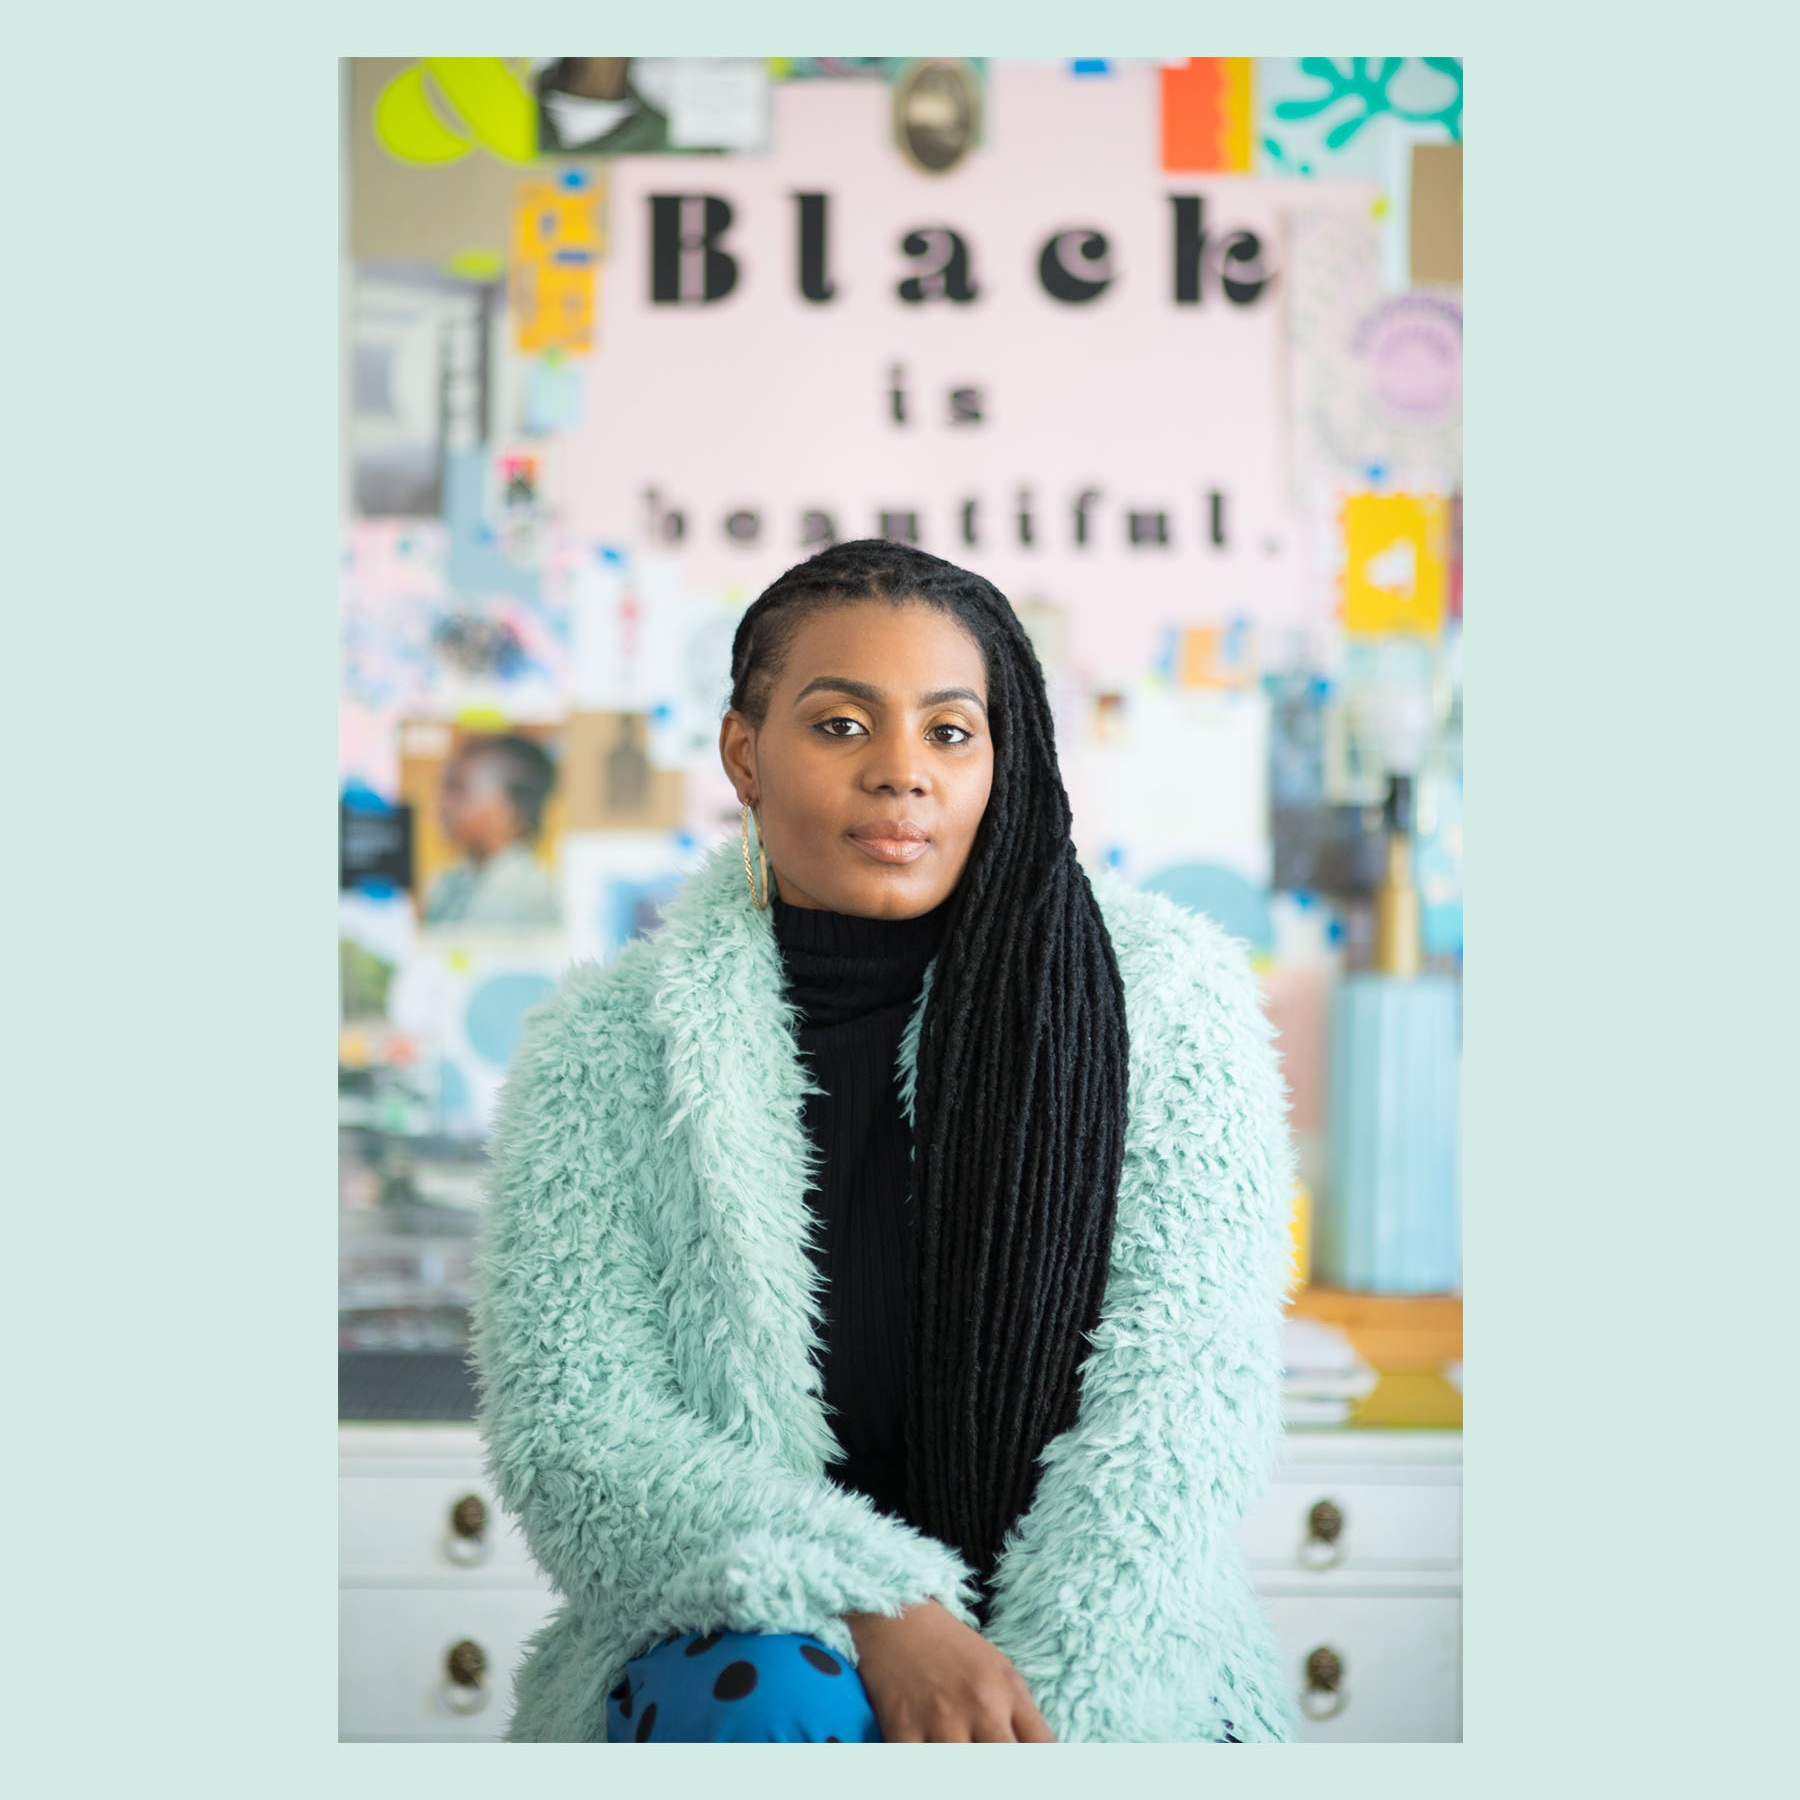 Tanekeya Word   , Founder.   Tanekeya Word is a Milwaukee, Wisconsin based visual artist, printmaker and art educator. A womanist, her work centers around Black women: sampling their past, remixing their present, and re-imagining the future of Blackness through the lens of Black girlhood and womanhood. Tanekeya is pursuing a PhD in Urban Education, with a specialization in Art Education. Her research focuses on Critical Race Theory, Black women, Thirdspace and Black Aesthetics.   +  tanekeya word in her home workspace.